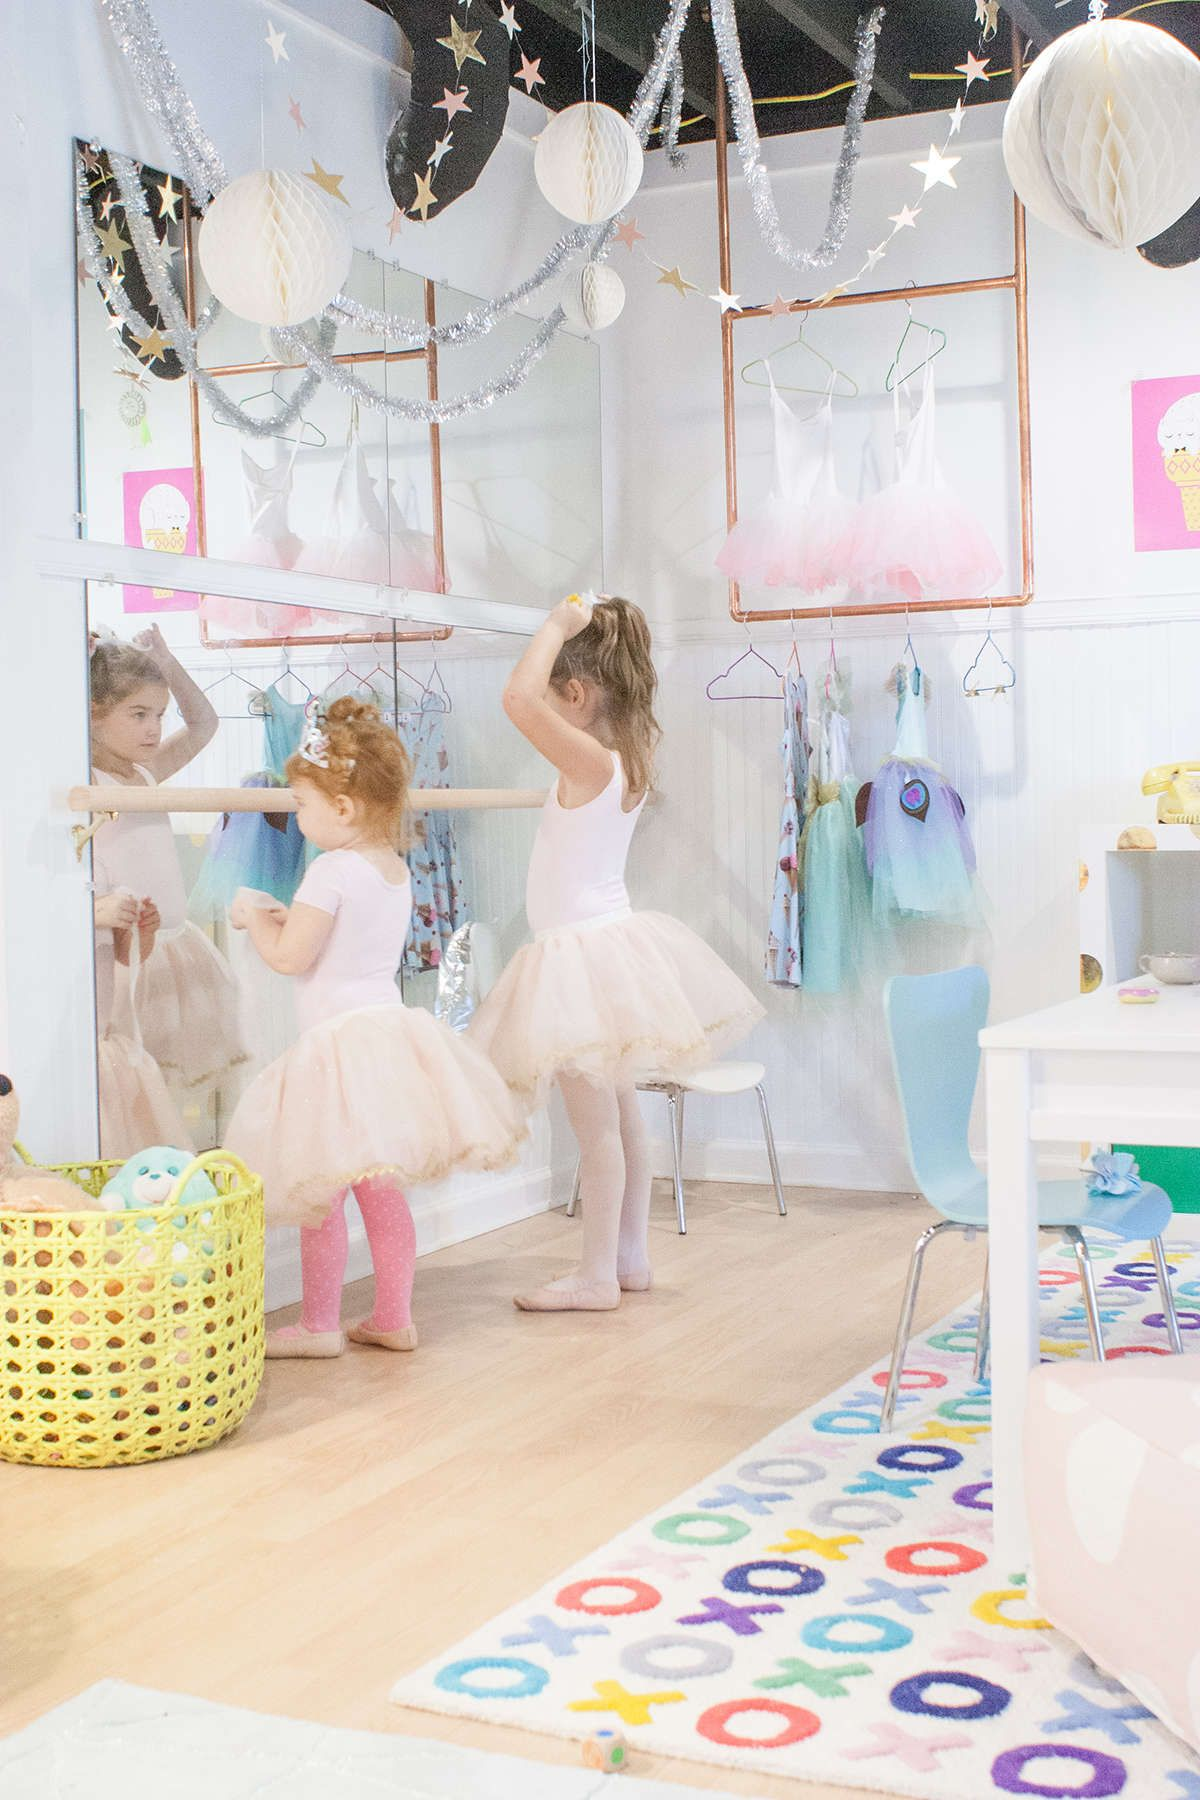 Kids Bedroom Mirrors Simple Diy Ballet Barre For Playroom Full Length Mirrors Ballet